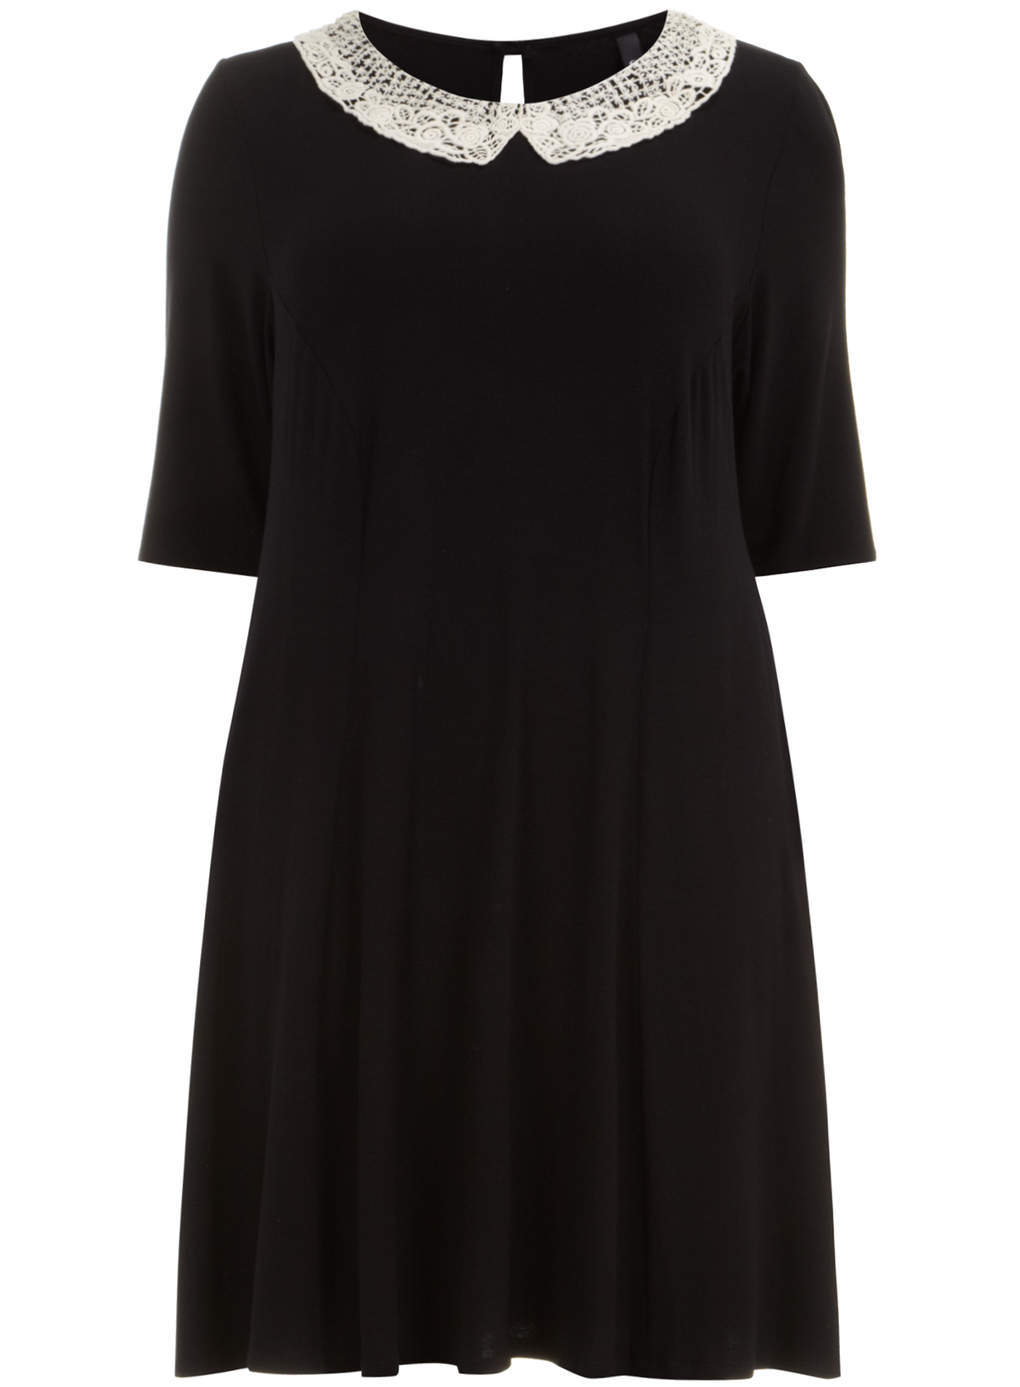 Black Jersey Swing Dress - style: smock; fit: loose; pattern: plain; predominant colour: black; occasions: casual, creative work; length: just above the knee; fibres: viscose/rayon - stretch; neckline: no opening/shirt collar/peter pan; hip detail: subtle/flattering hip detail; back detail: keyhole/peephole detail at back; sleeve length: half sleeve; sleeve style: standard; pattern type: fabric; texture group: jersey - stretchy/drapey; embellishment: lace; season: s/s 2014; wardrobe: highlight; embellishment location: neck